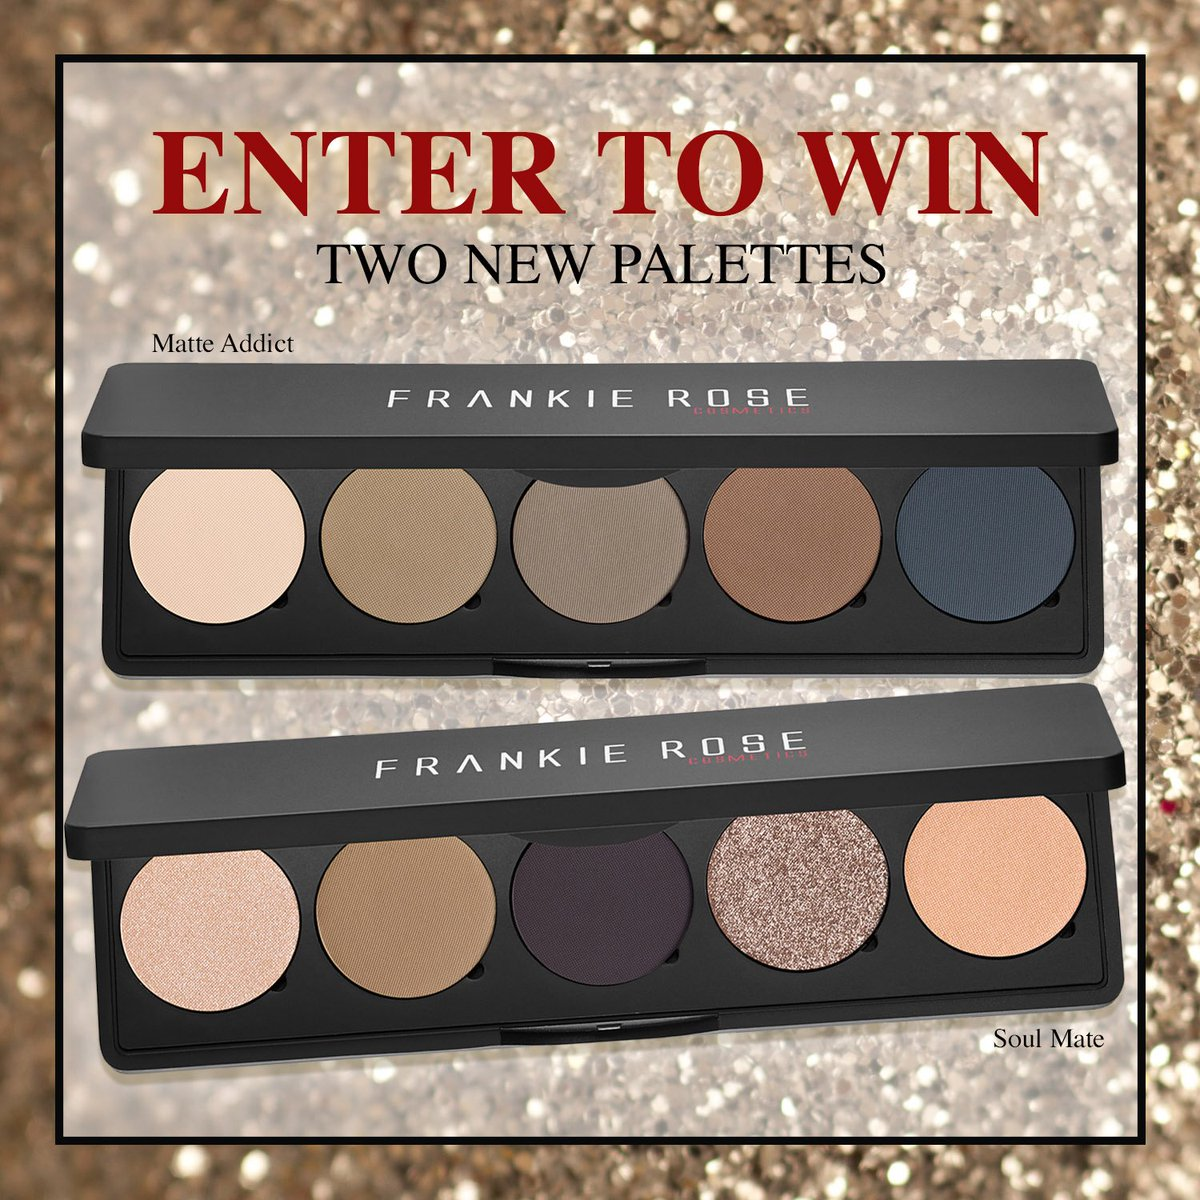 rt @PlanetBeauty  RT & Follow us and @FrankieRoseCo to enter to #win a new palette! #iheartpb #giveaway https://t.co/0CcdmtxFfc